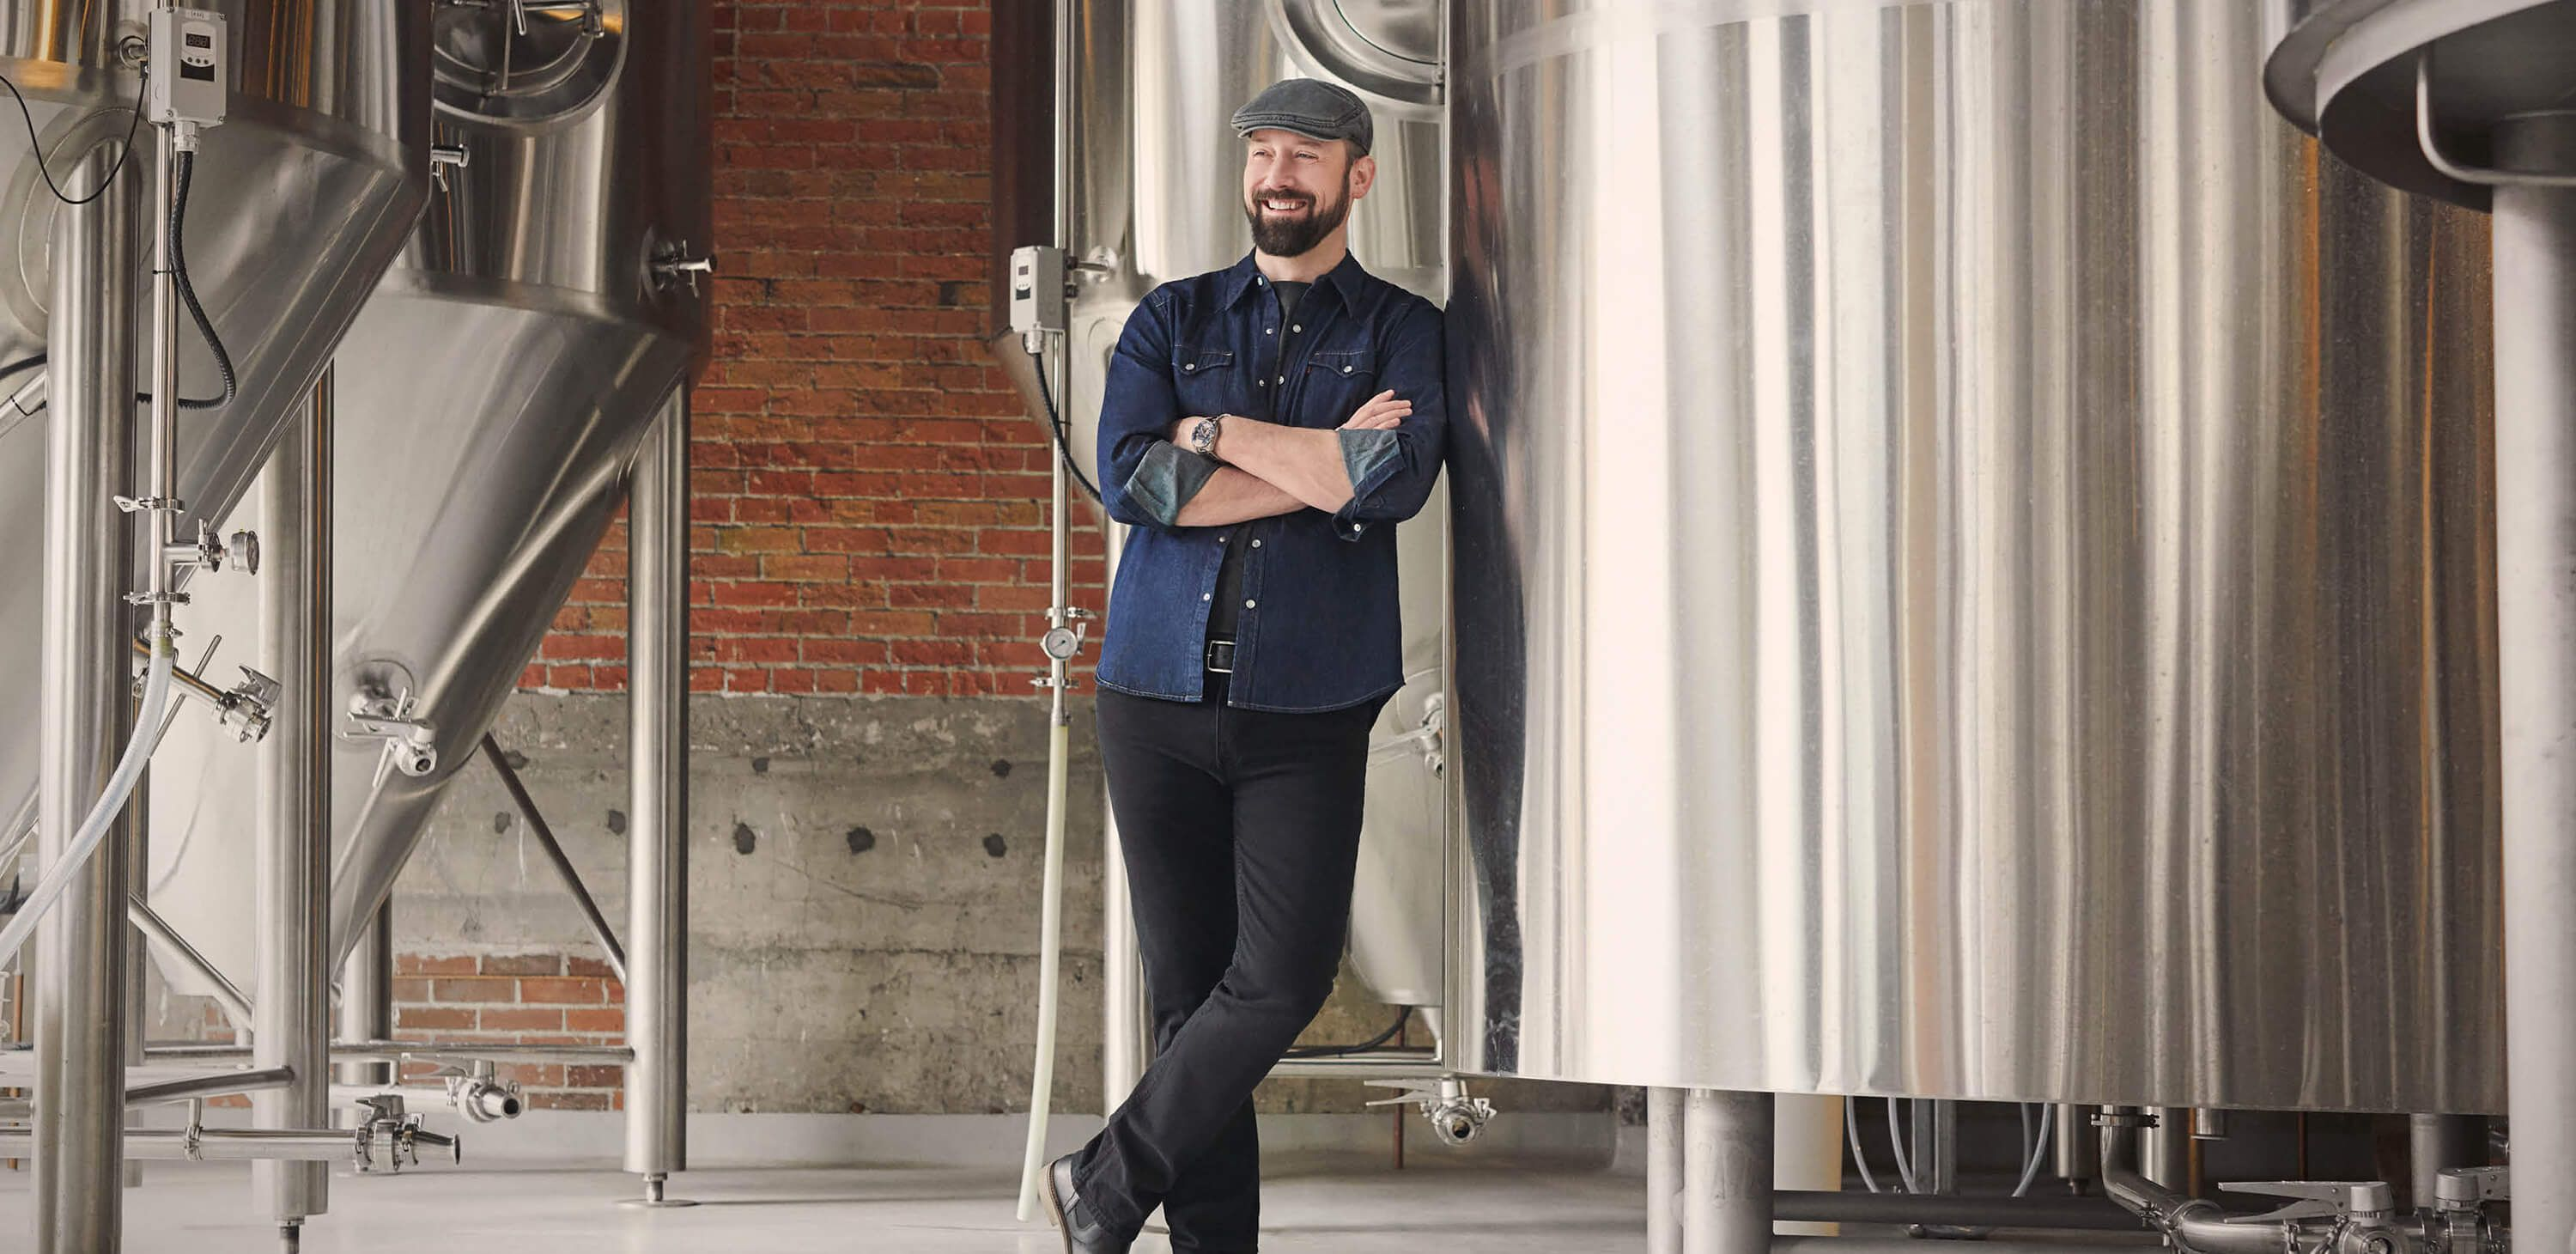 Chris Nowlan is the co-founder of InnerCity Brewing in Calgary, Alberta.